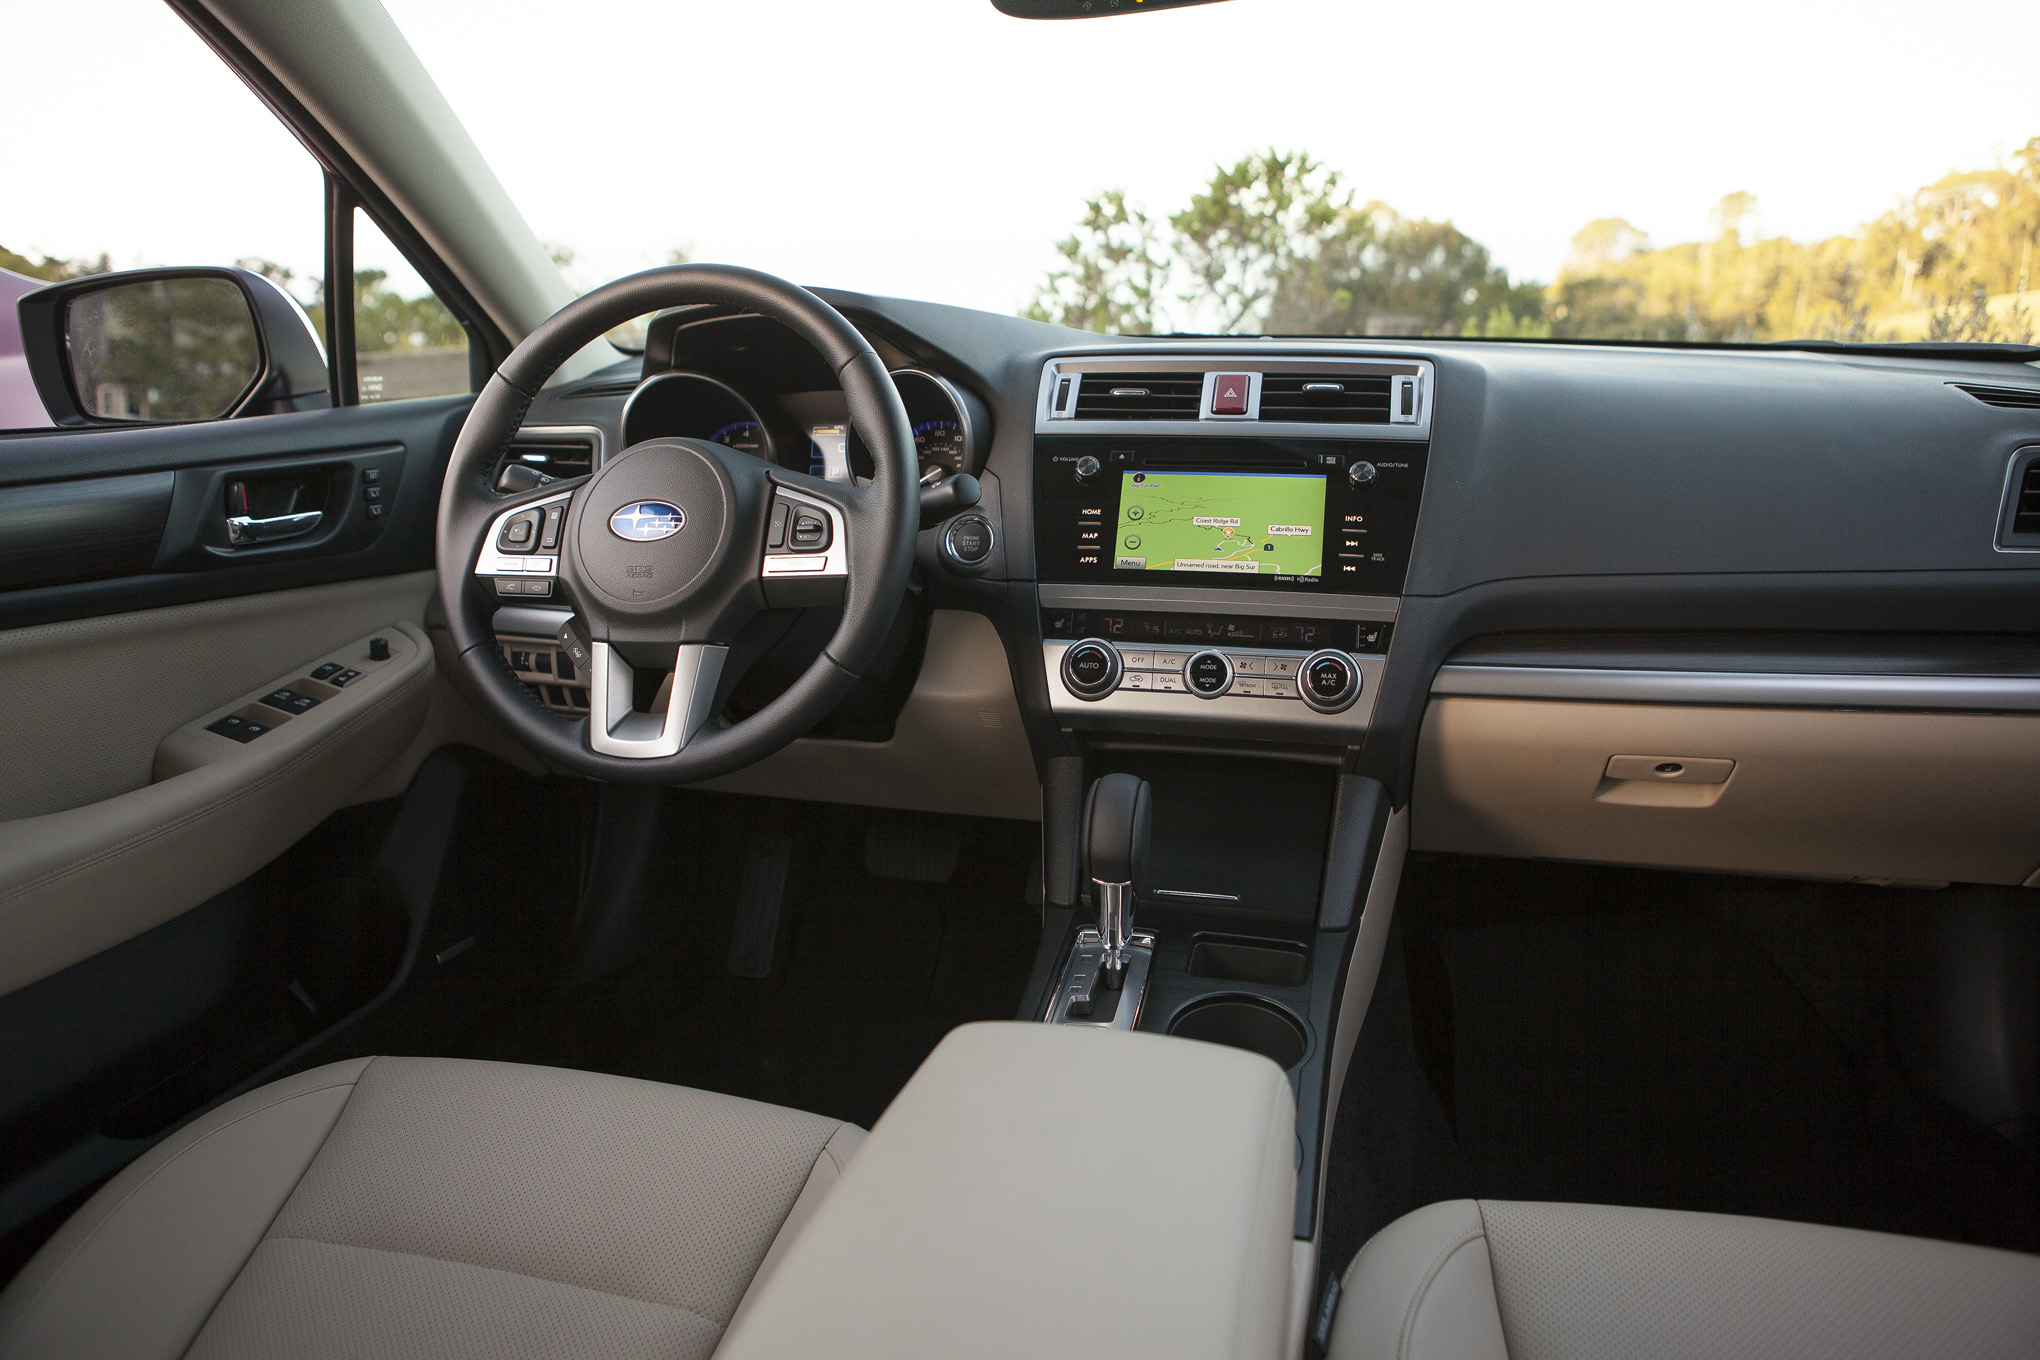 2015 subaru forester interior. in the first fifty five minutes of that driving you may prefer firm to pad and also present lumbar support yeah will complain back pain 2015 subaru forester interior